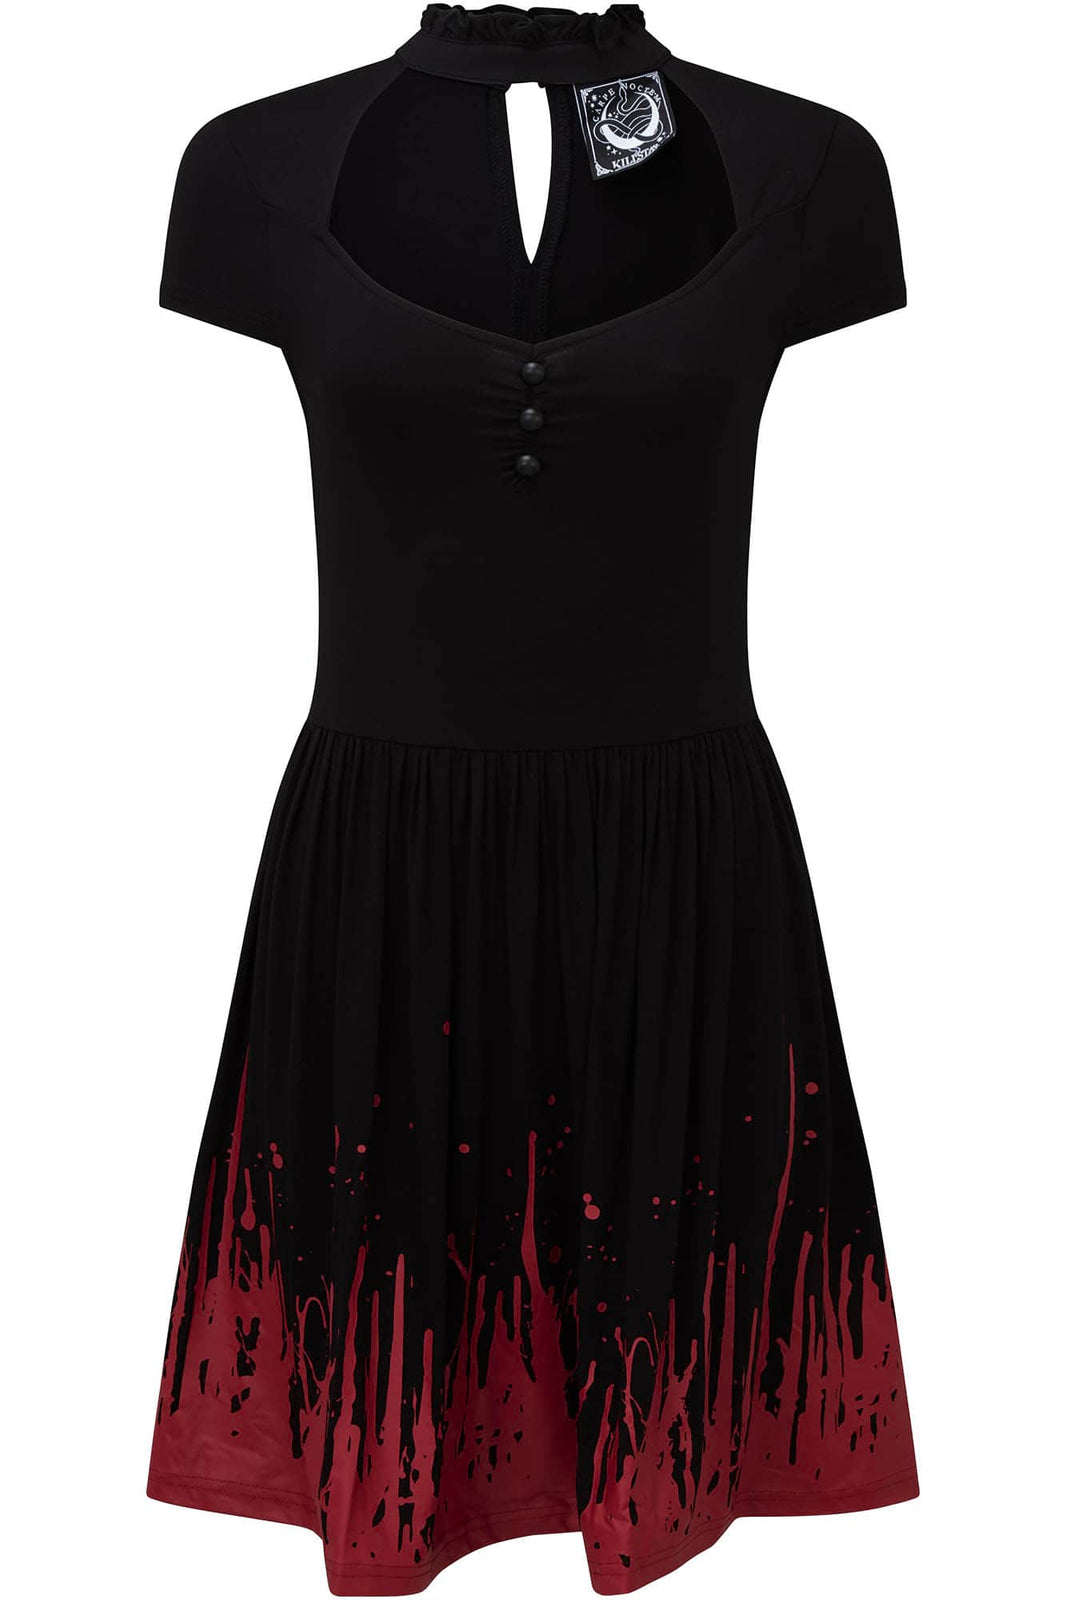 Blood Thirsty Skater Dress